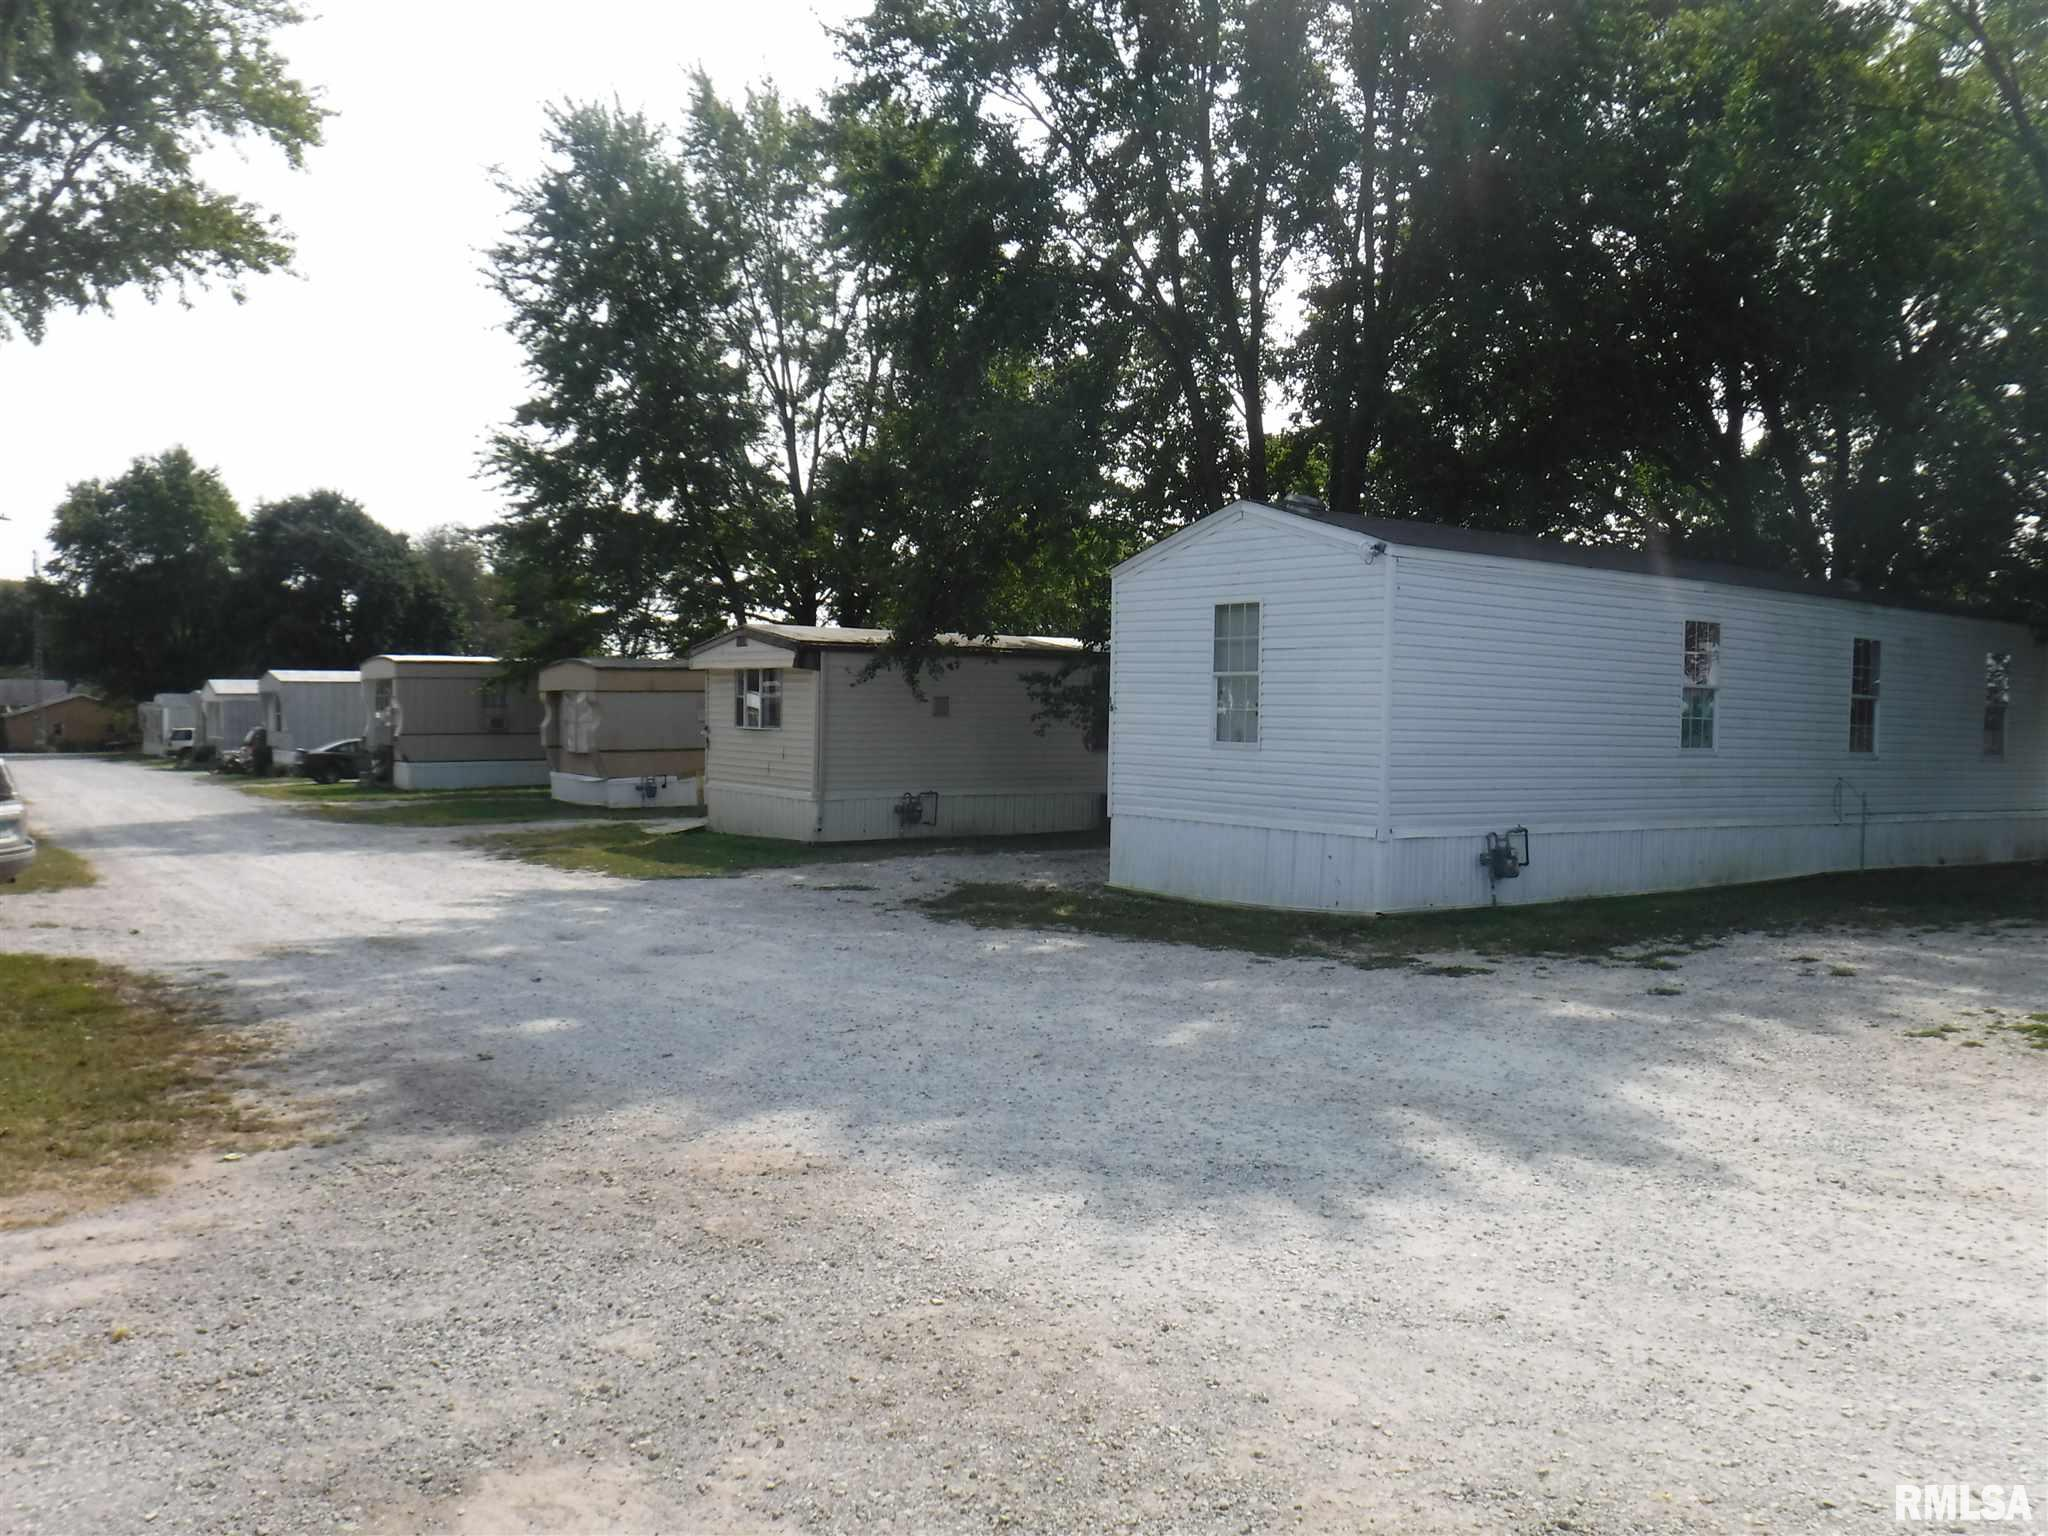 INVESTMENT OPPORTUNITY!! Trailer Park in Kinmundy, IL with 17 rentals up & running.  Right on the south edge of Kinmundy, IL is an investment opportunity waiting for a buyer.  1 house & 16 mobile homes with almost 2 acres included in the sale.  Many improvements! Financials provided with bank letter & signed confidentiality agreement.  Please see list of improvements.  Extra lot available at additional cost.